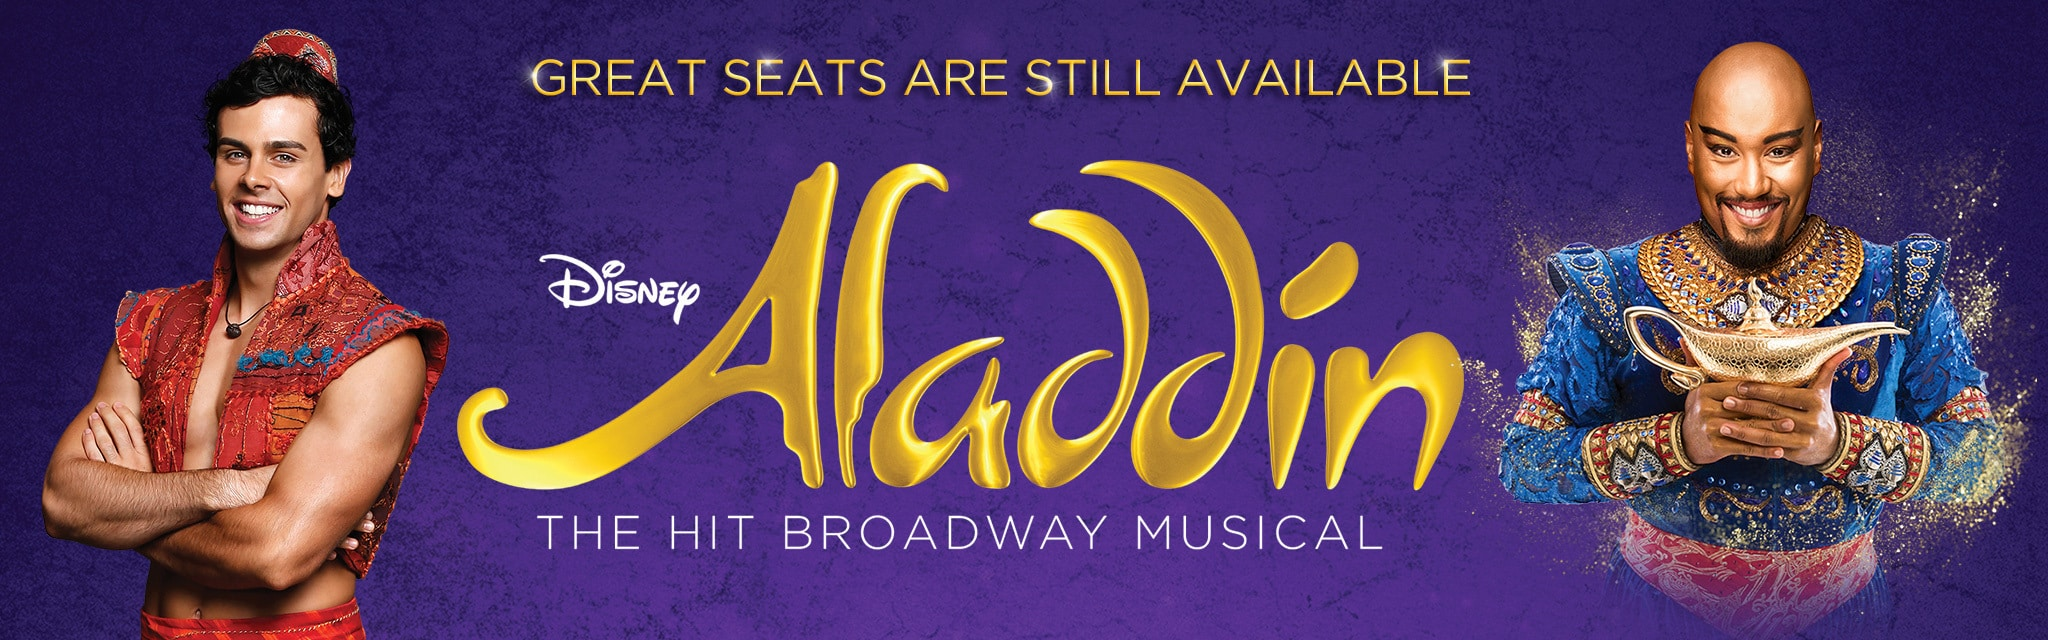 Live Shows AU - Aladdin Ticketing Site - Great Seats Available Hero